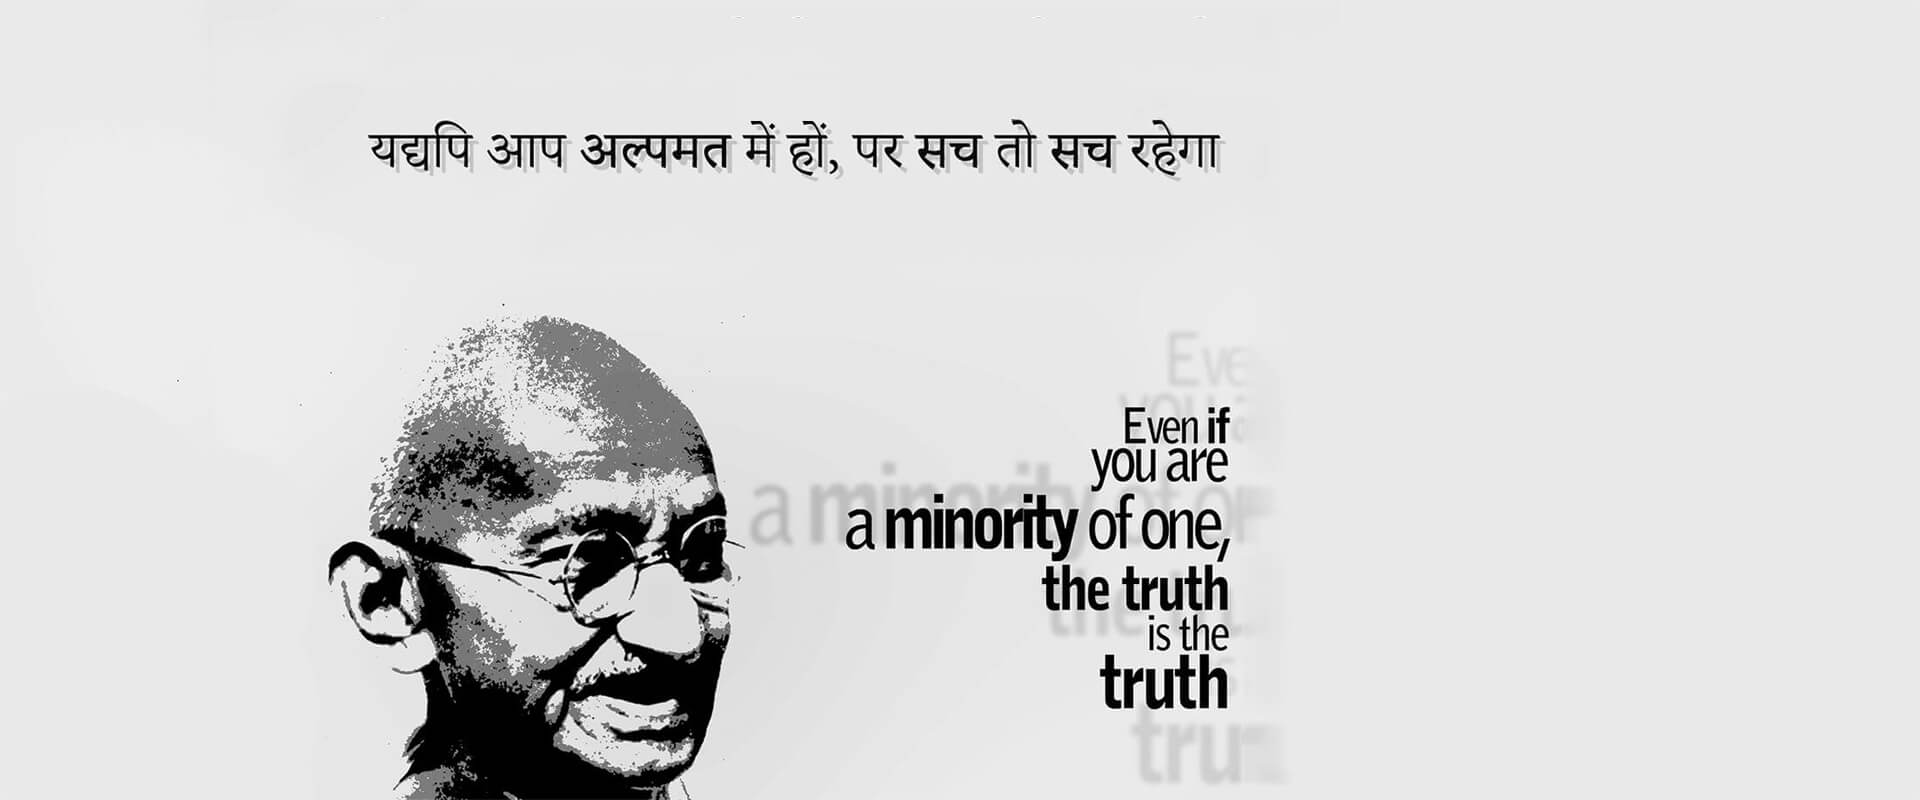 Mahatma Gandhi | Buy Posters, Frames, Canvas, Digital Art & Large Size Prints